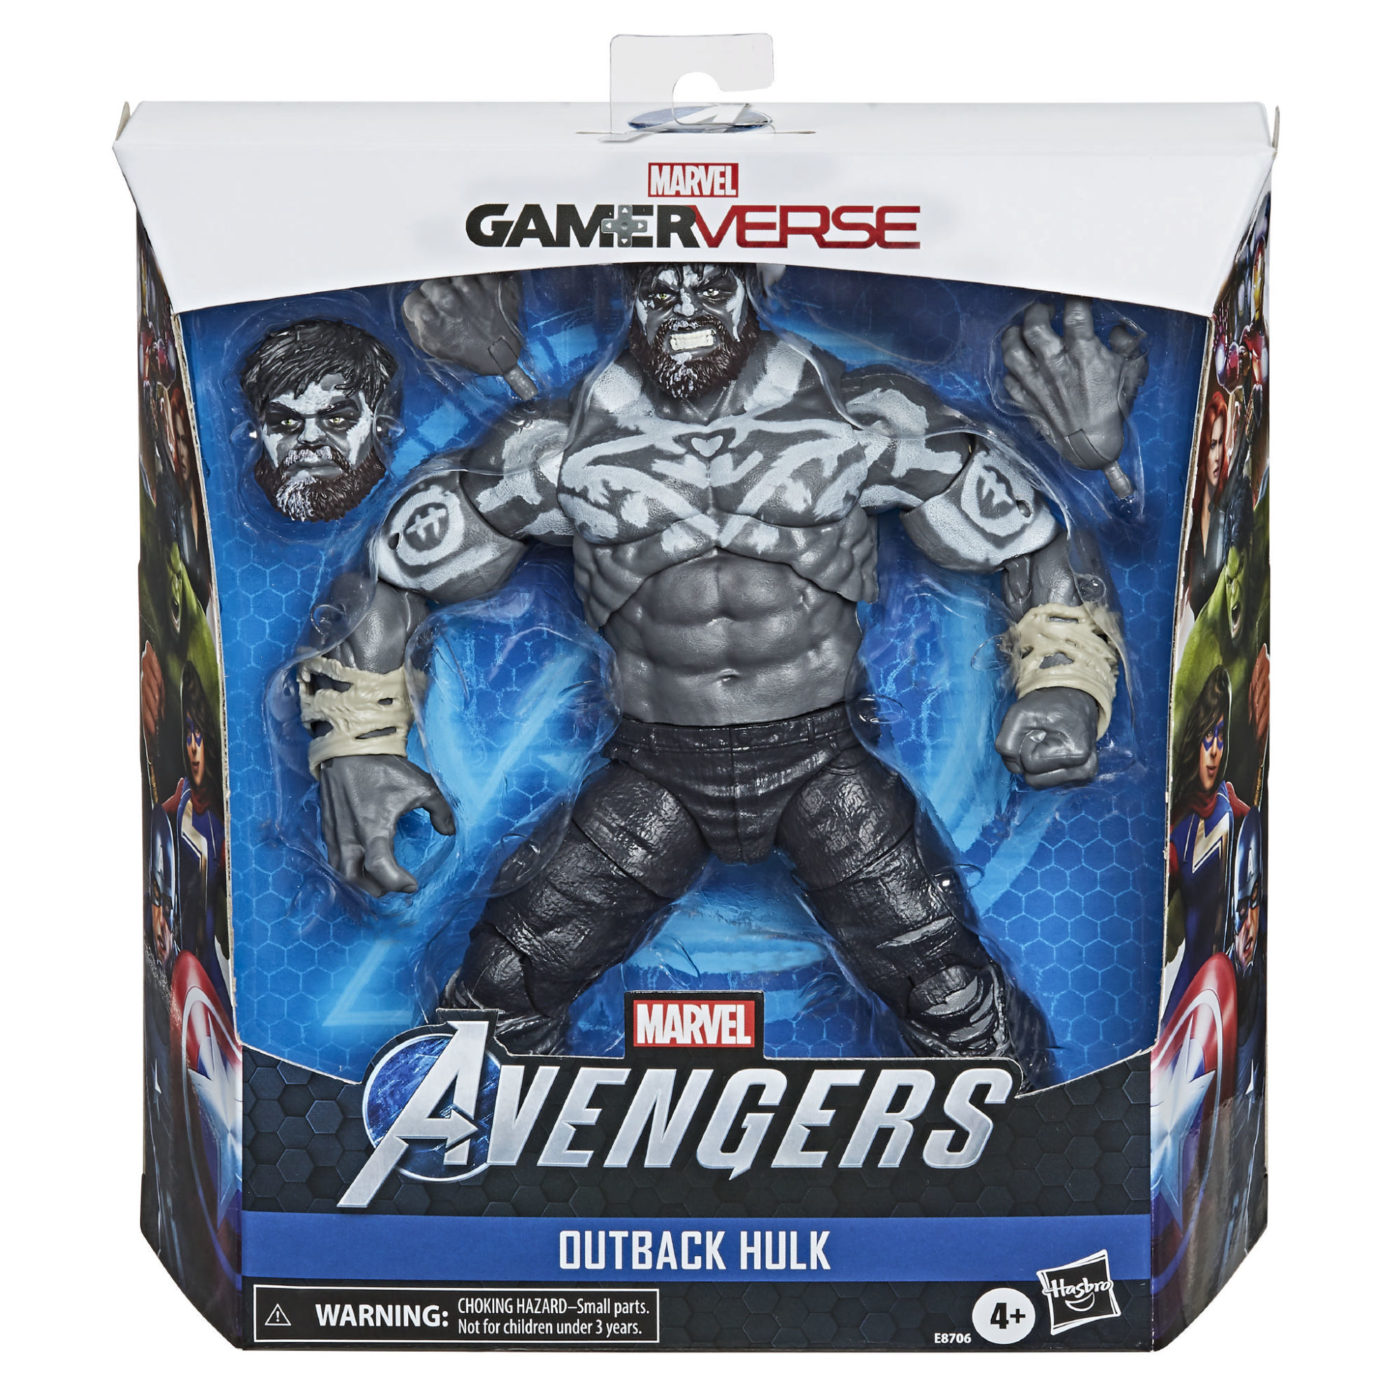 "marvel's avengers gamestop, Marvel's Avengers GameStop Exclusive Is the ""Outback Hulk"" and Includes an Action Figure, MP1st, MP1st"